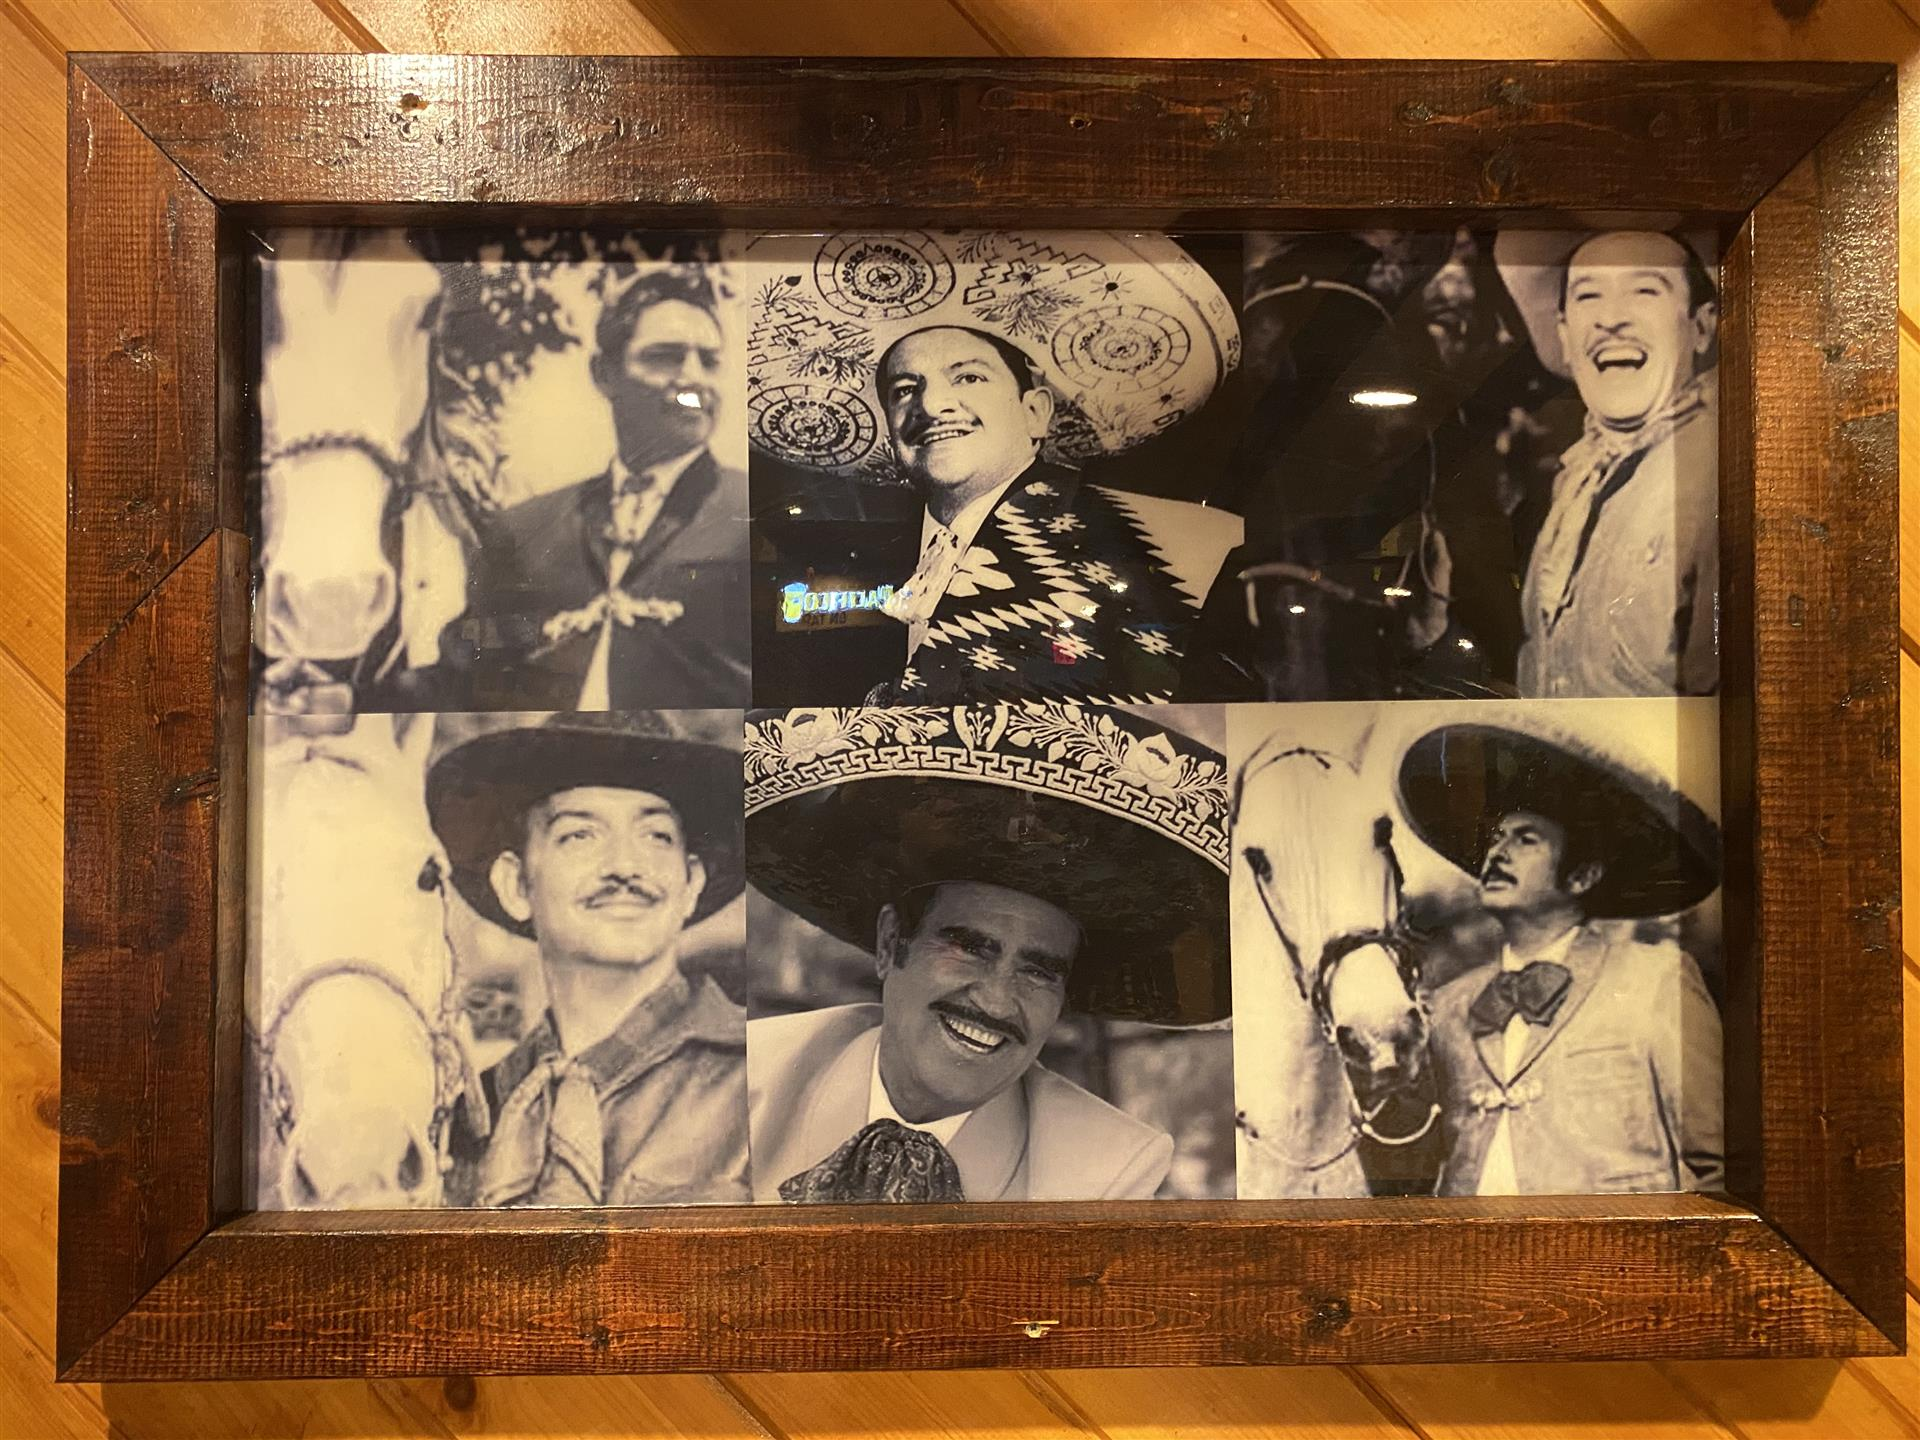 vintage photo collage of mariachi band members